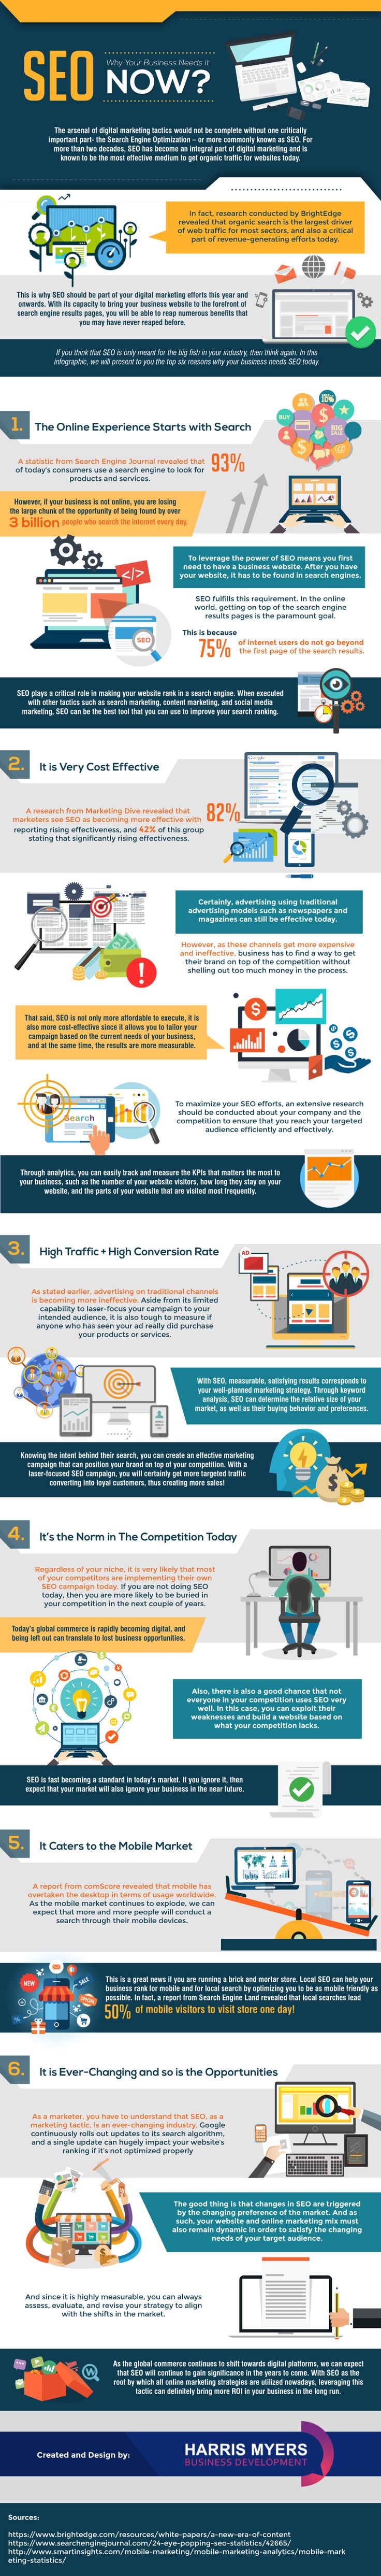 http://www.digitalinformationworld.com/2017/10/seo-why-your-business-needs-it-now.html